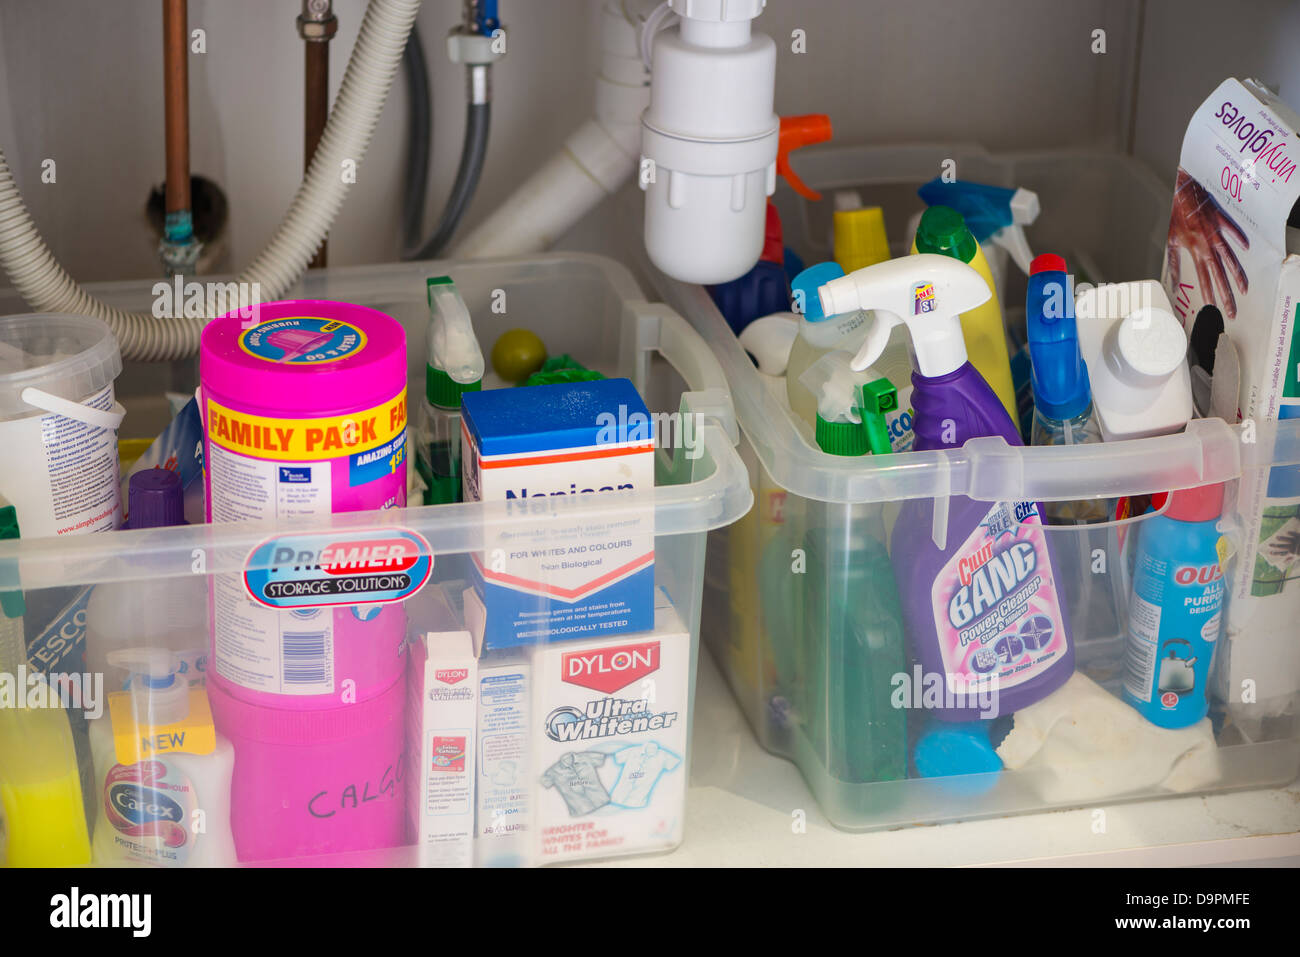 https www alamy com stock photo domestic cleaning products under sink 57662066 html